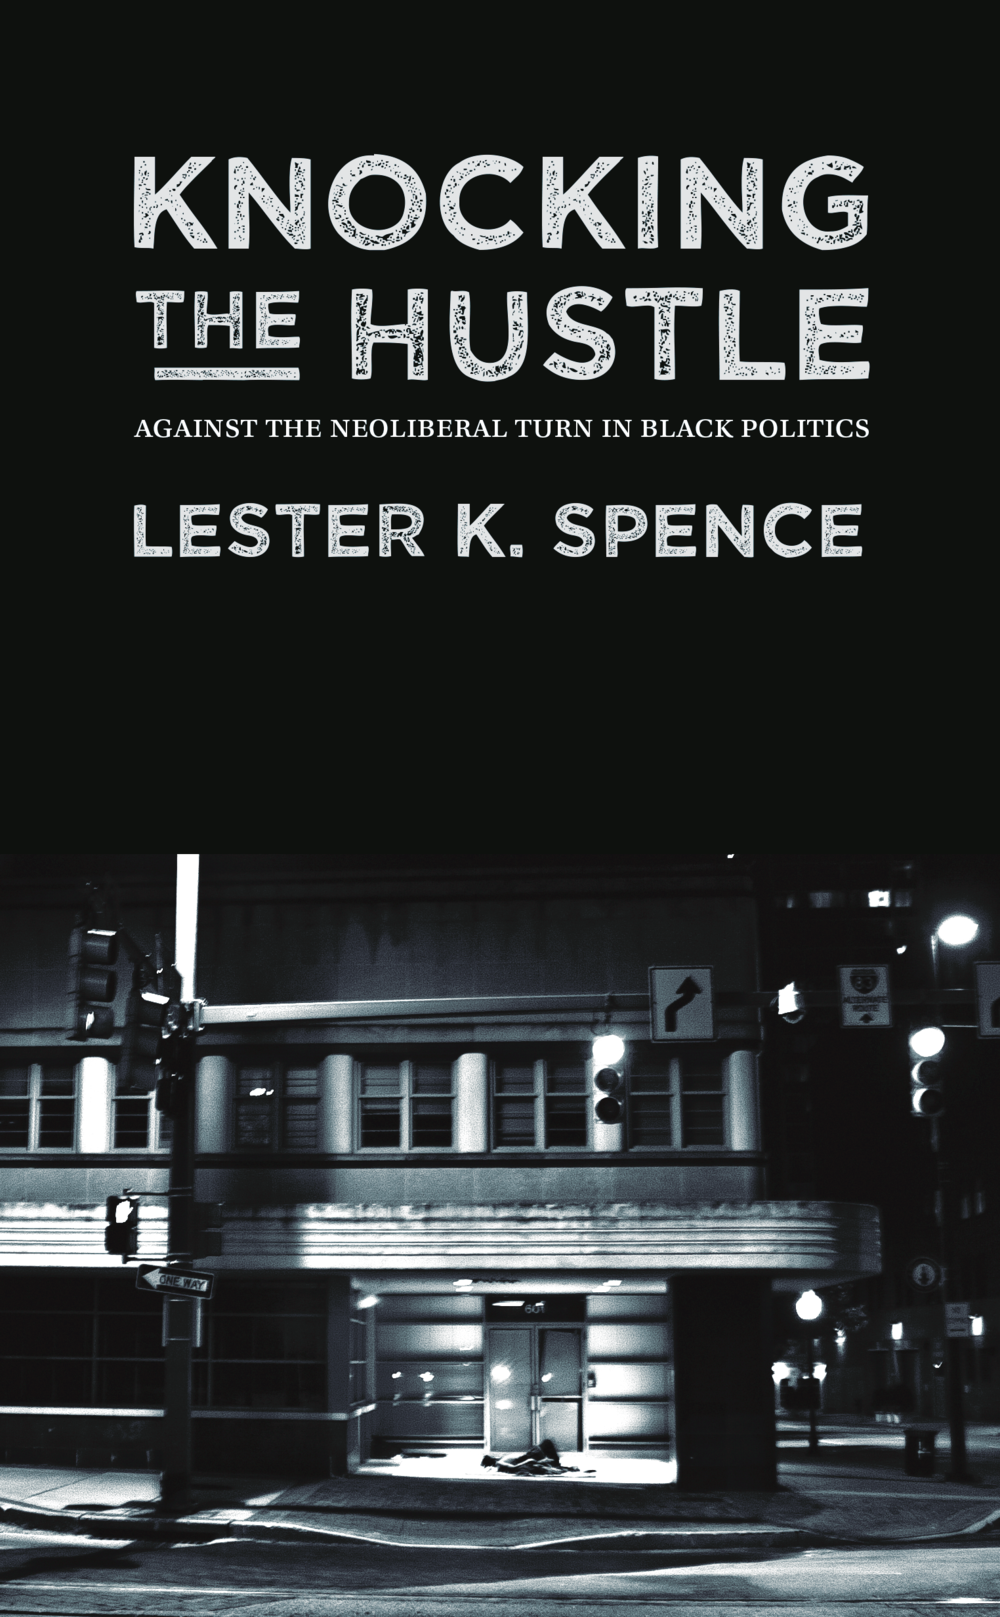 Knocking the Hustle. [Lester K. Spence.] 2015.